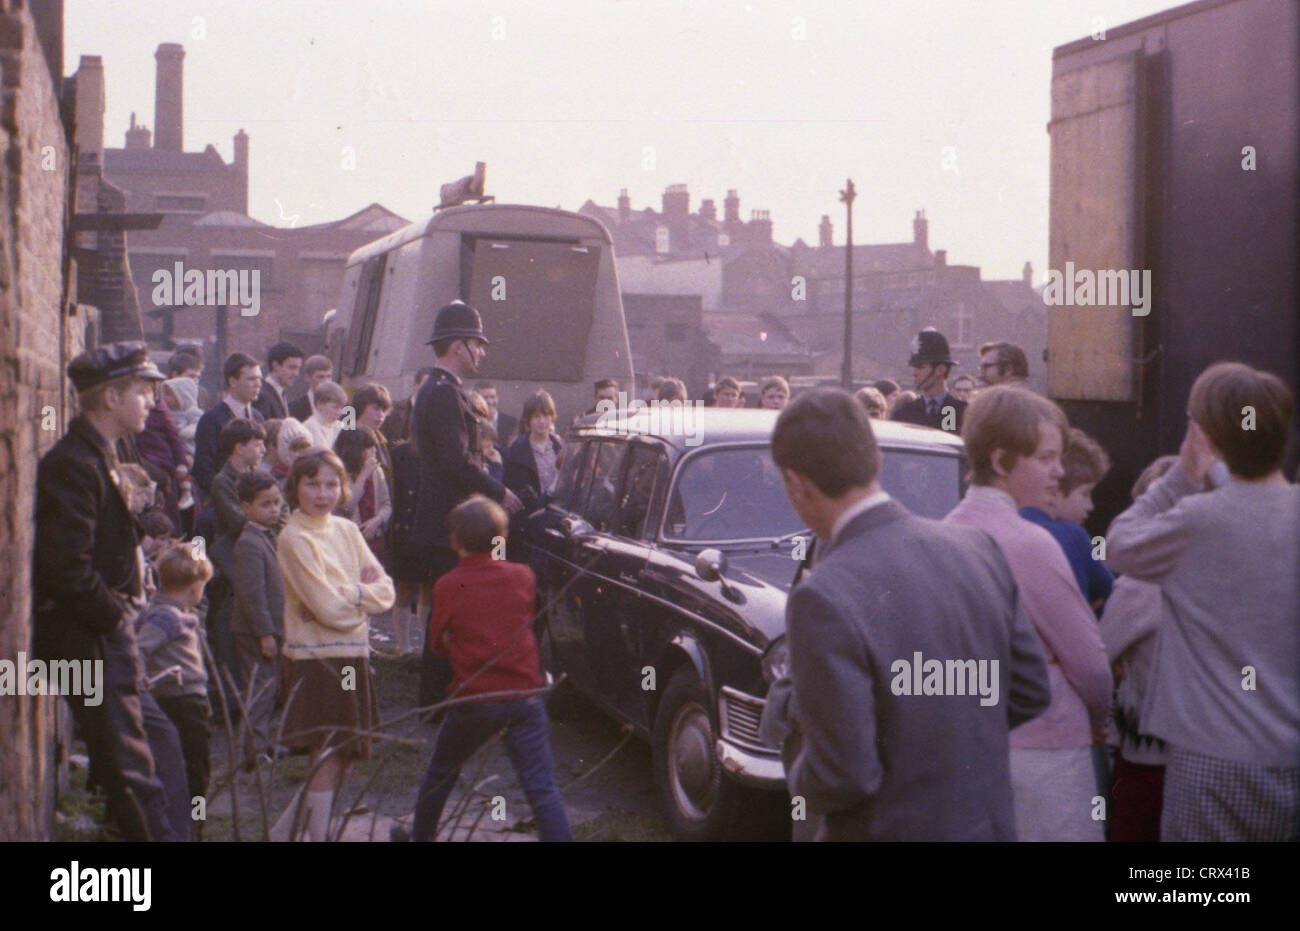 003574 - The Beatles arriving for filming at Knole Park in Sevenoaks on 7th February 1967 - Stock Image